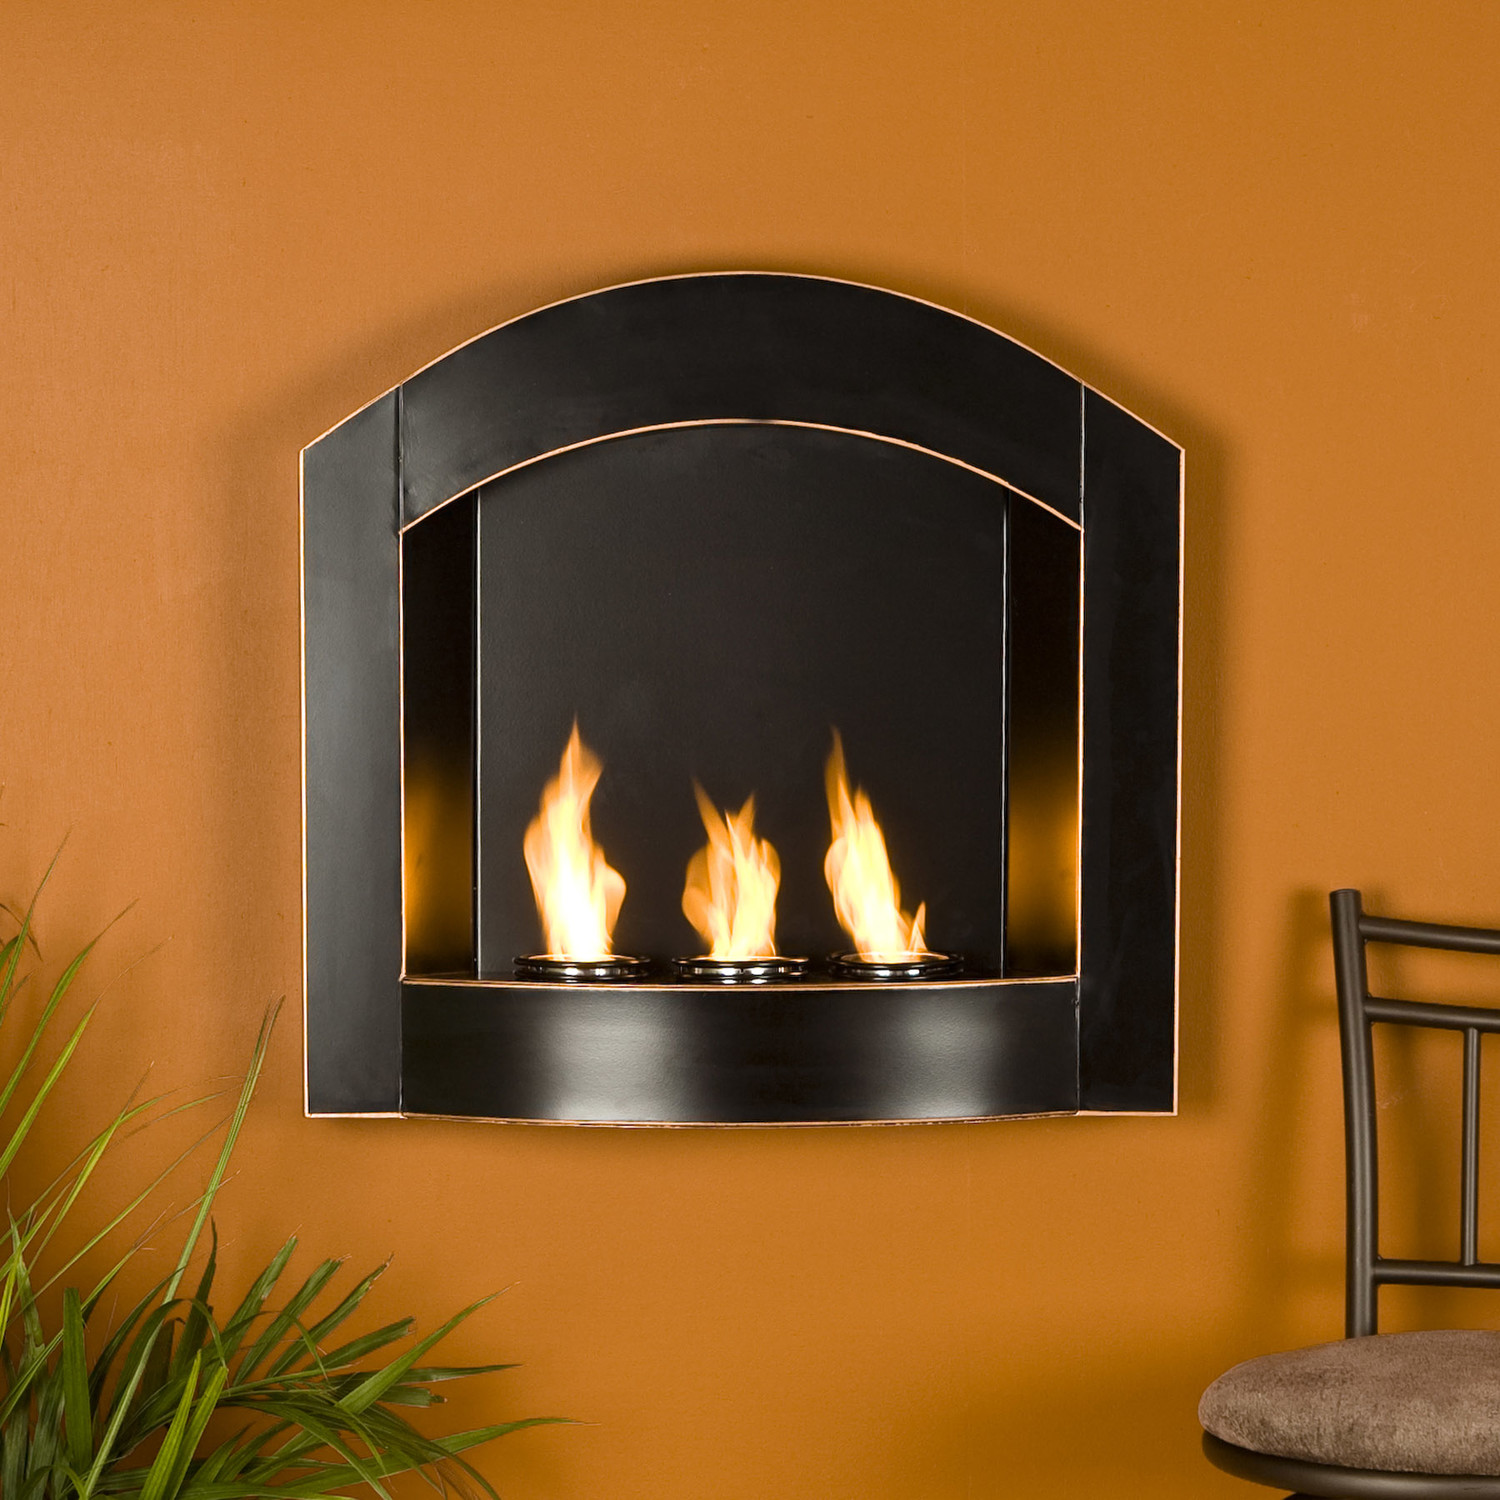 Gas Fireplace Indoor Portable Indoor Gas Fireplace | Fireplace Design Ideas